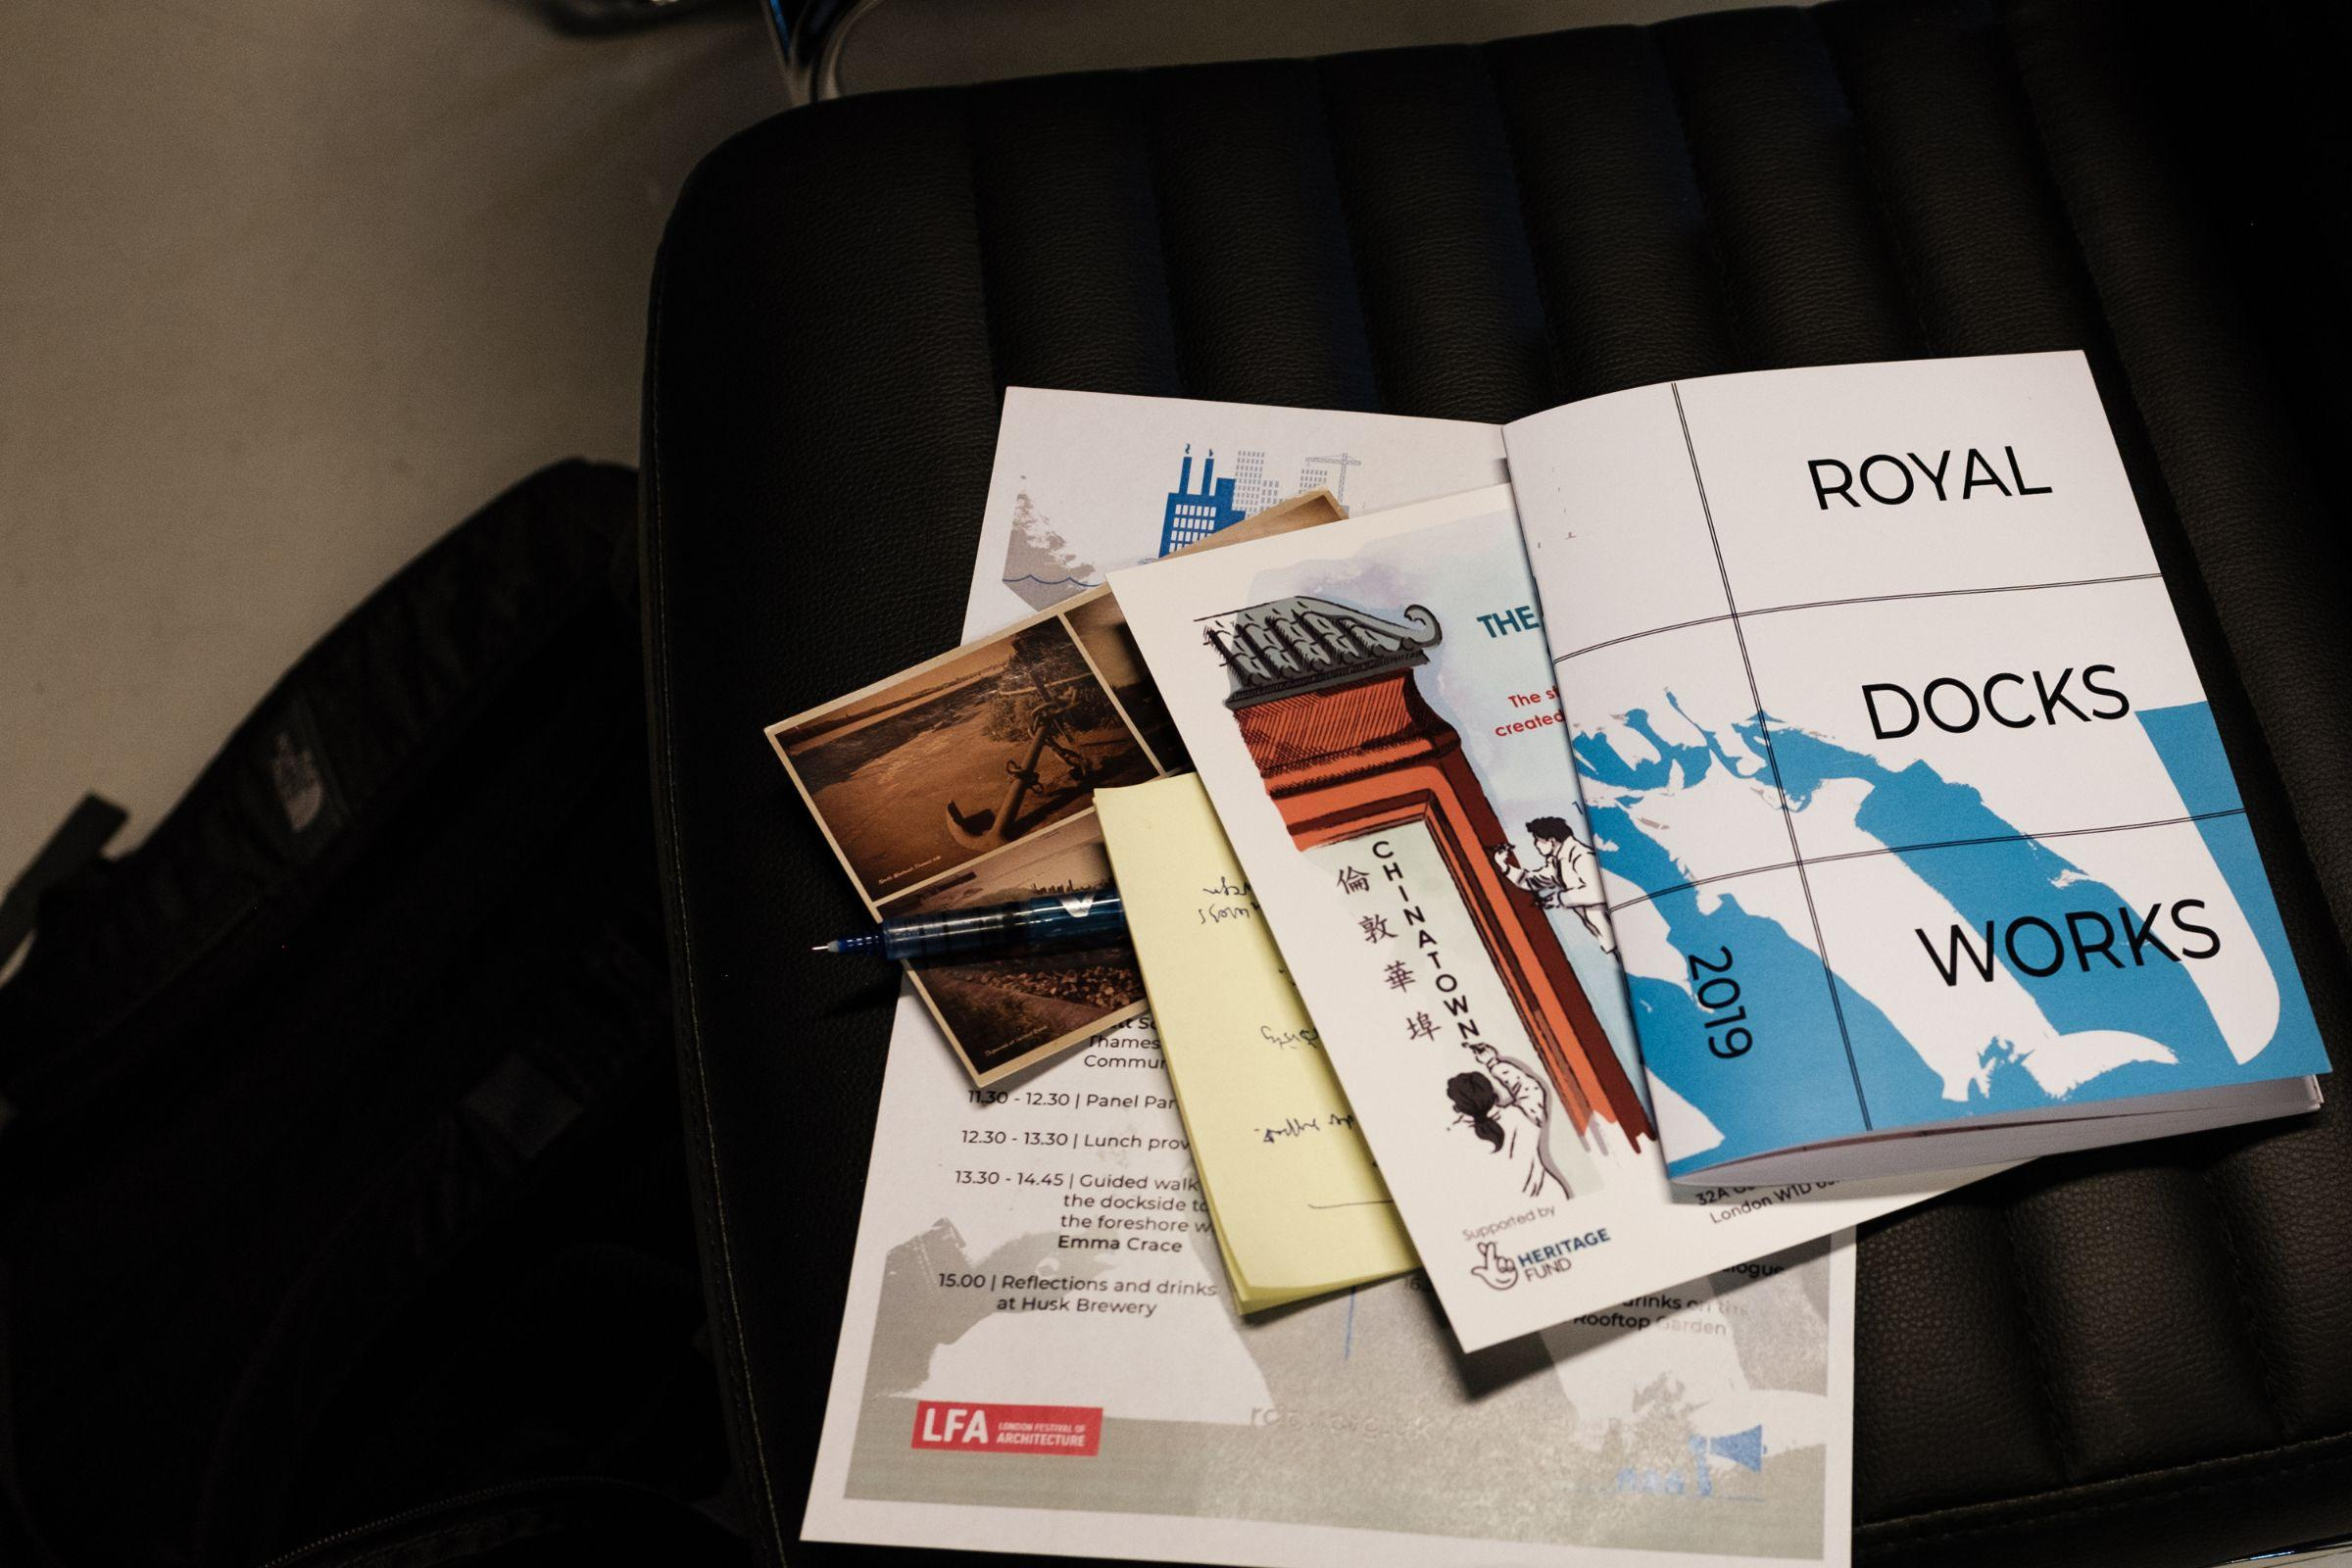 A selection of pamphlets from the Royal Docks community